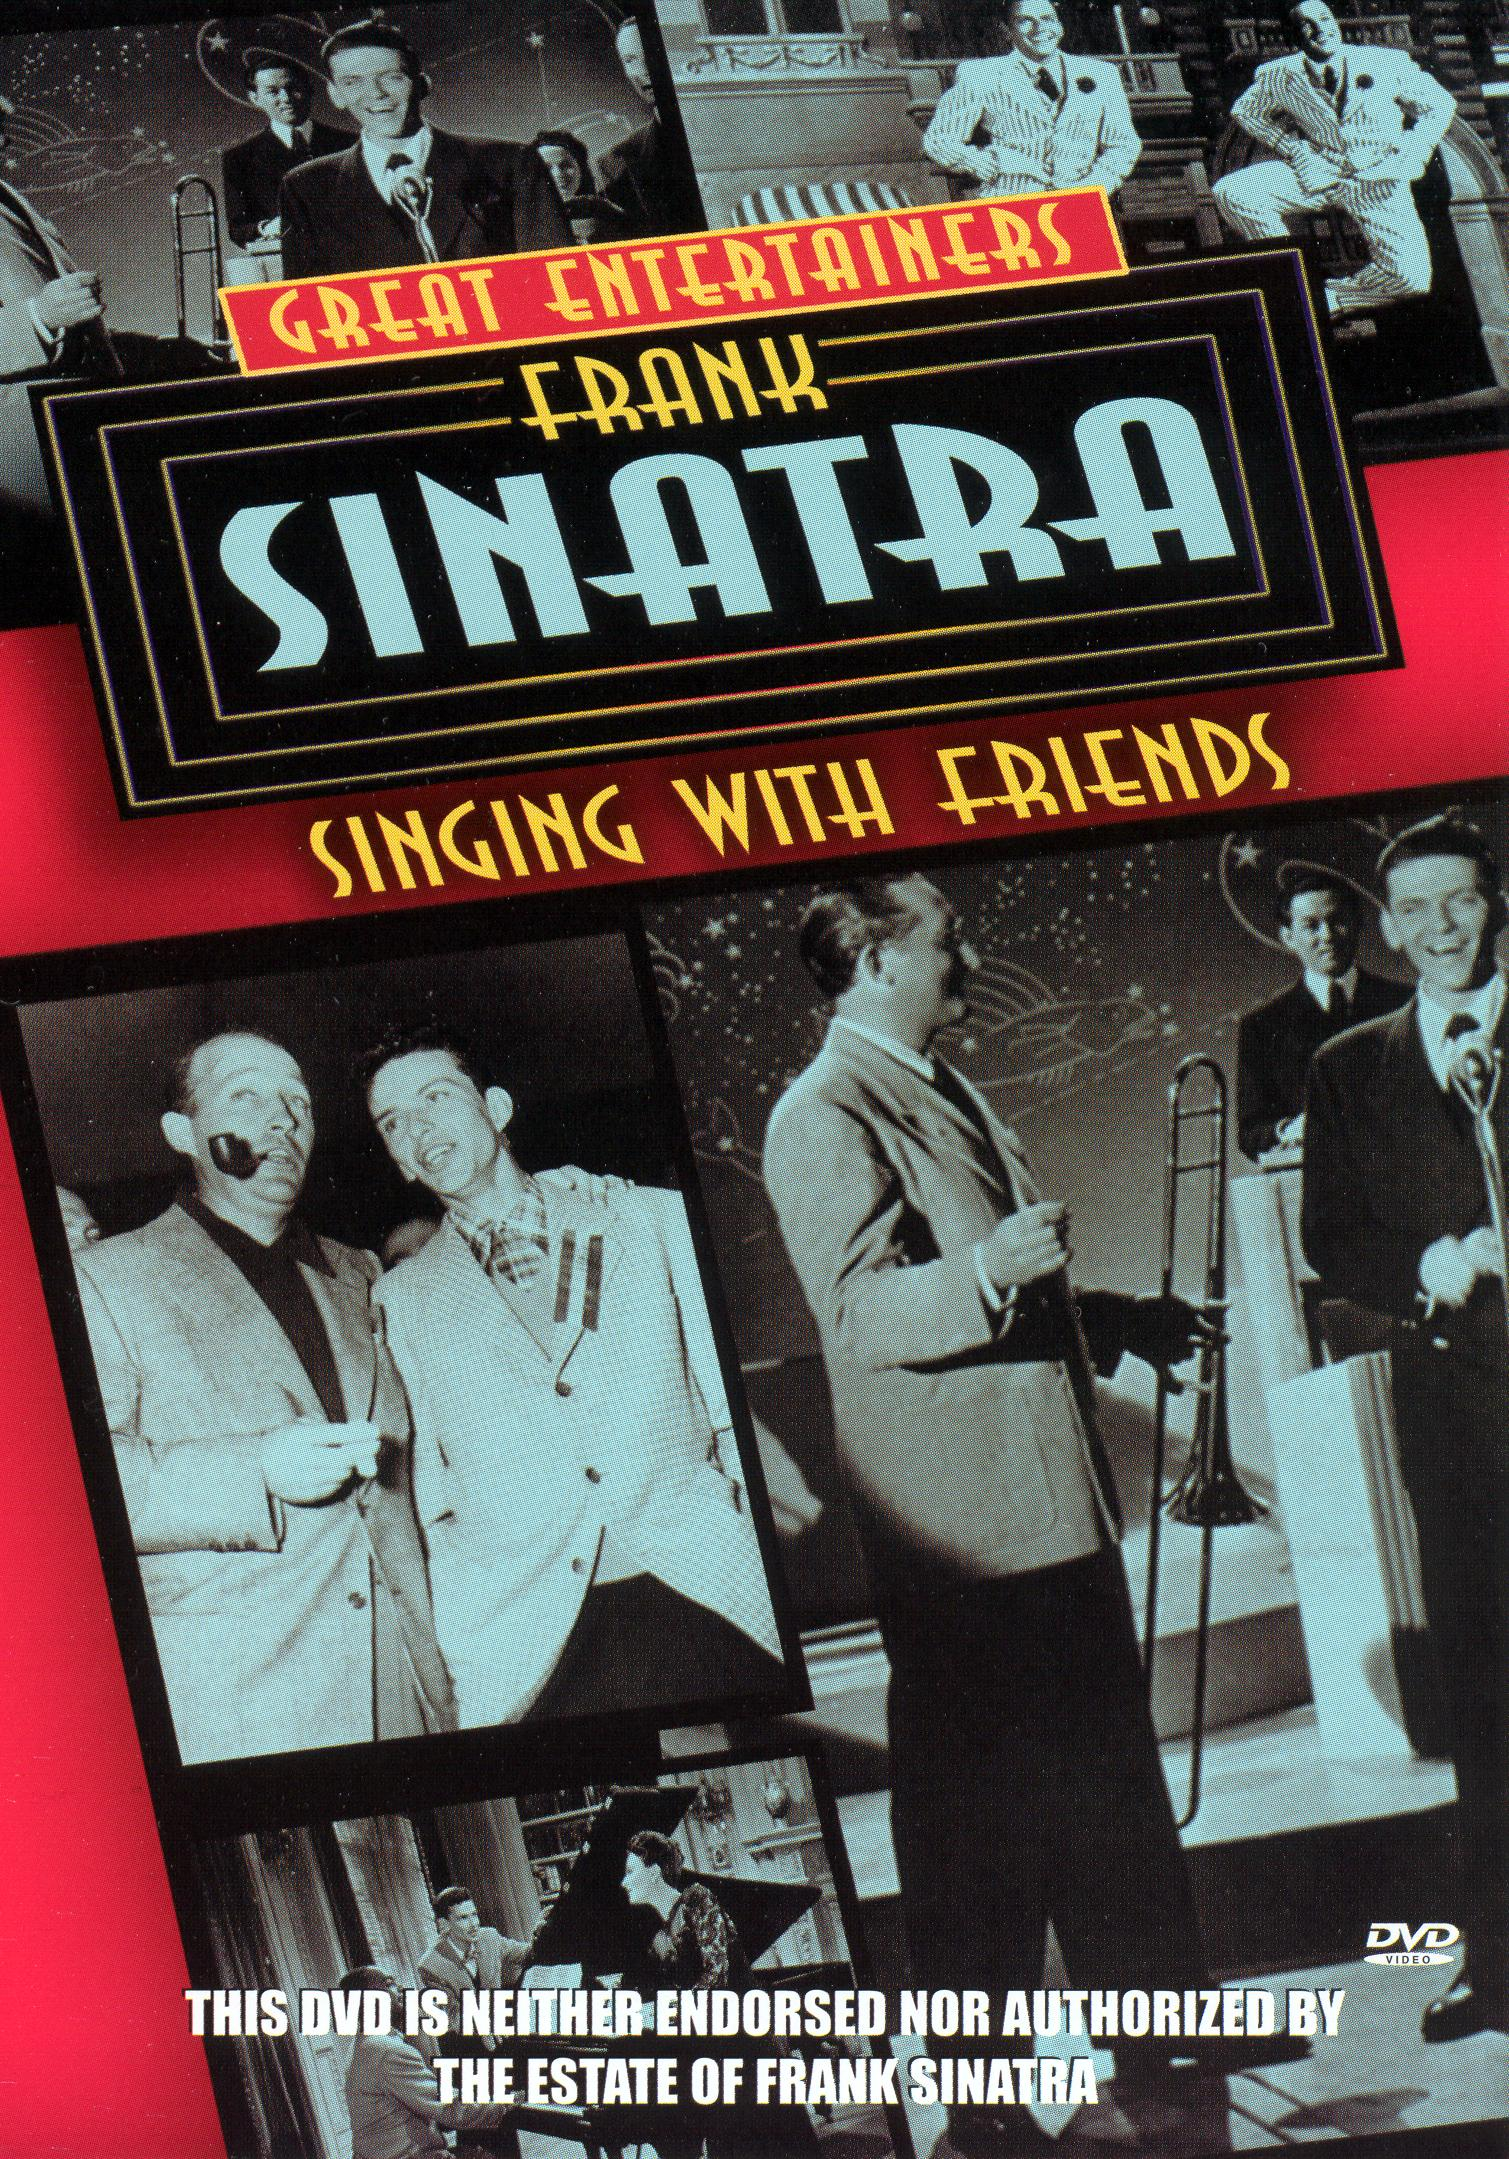 Great Entertainers: Frank Sinatra Singing With Friends